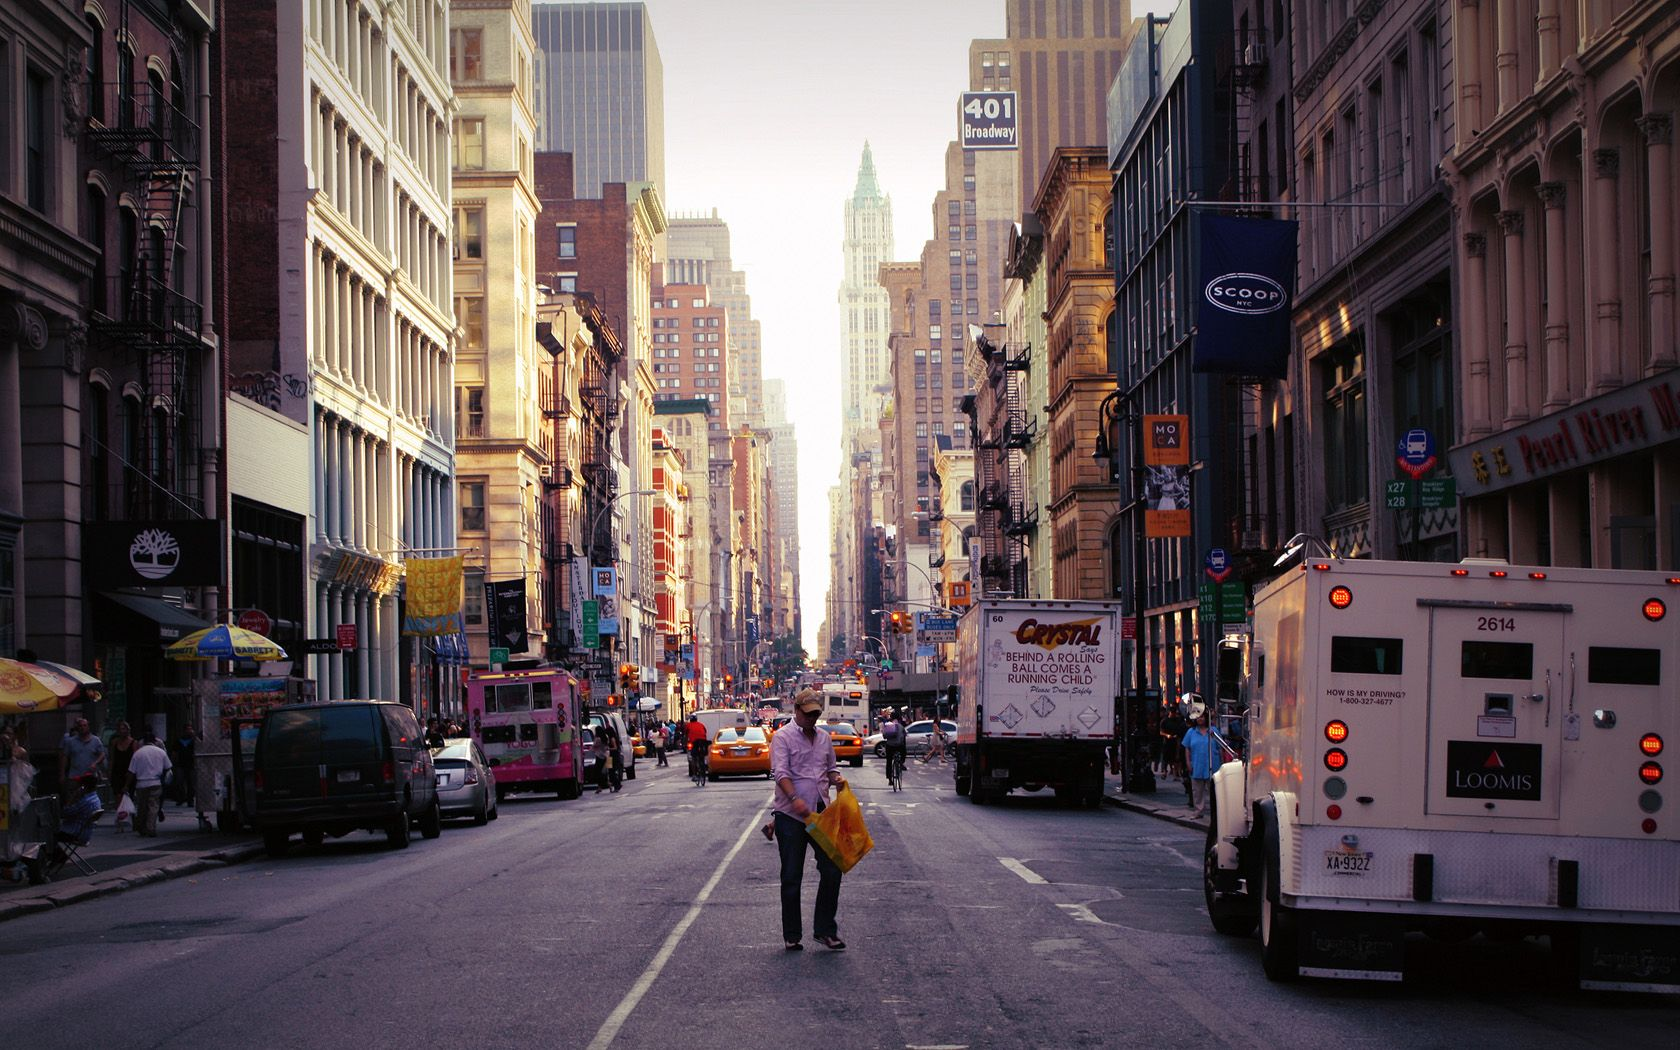 Pin By Amandine Marquis On New York City City Wallpaper Winter Photography New York Wallpaper